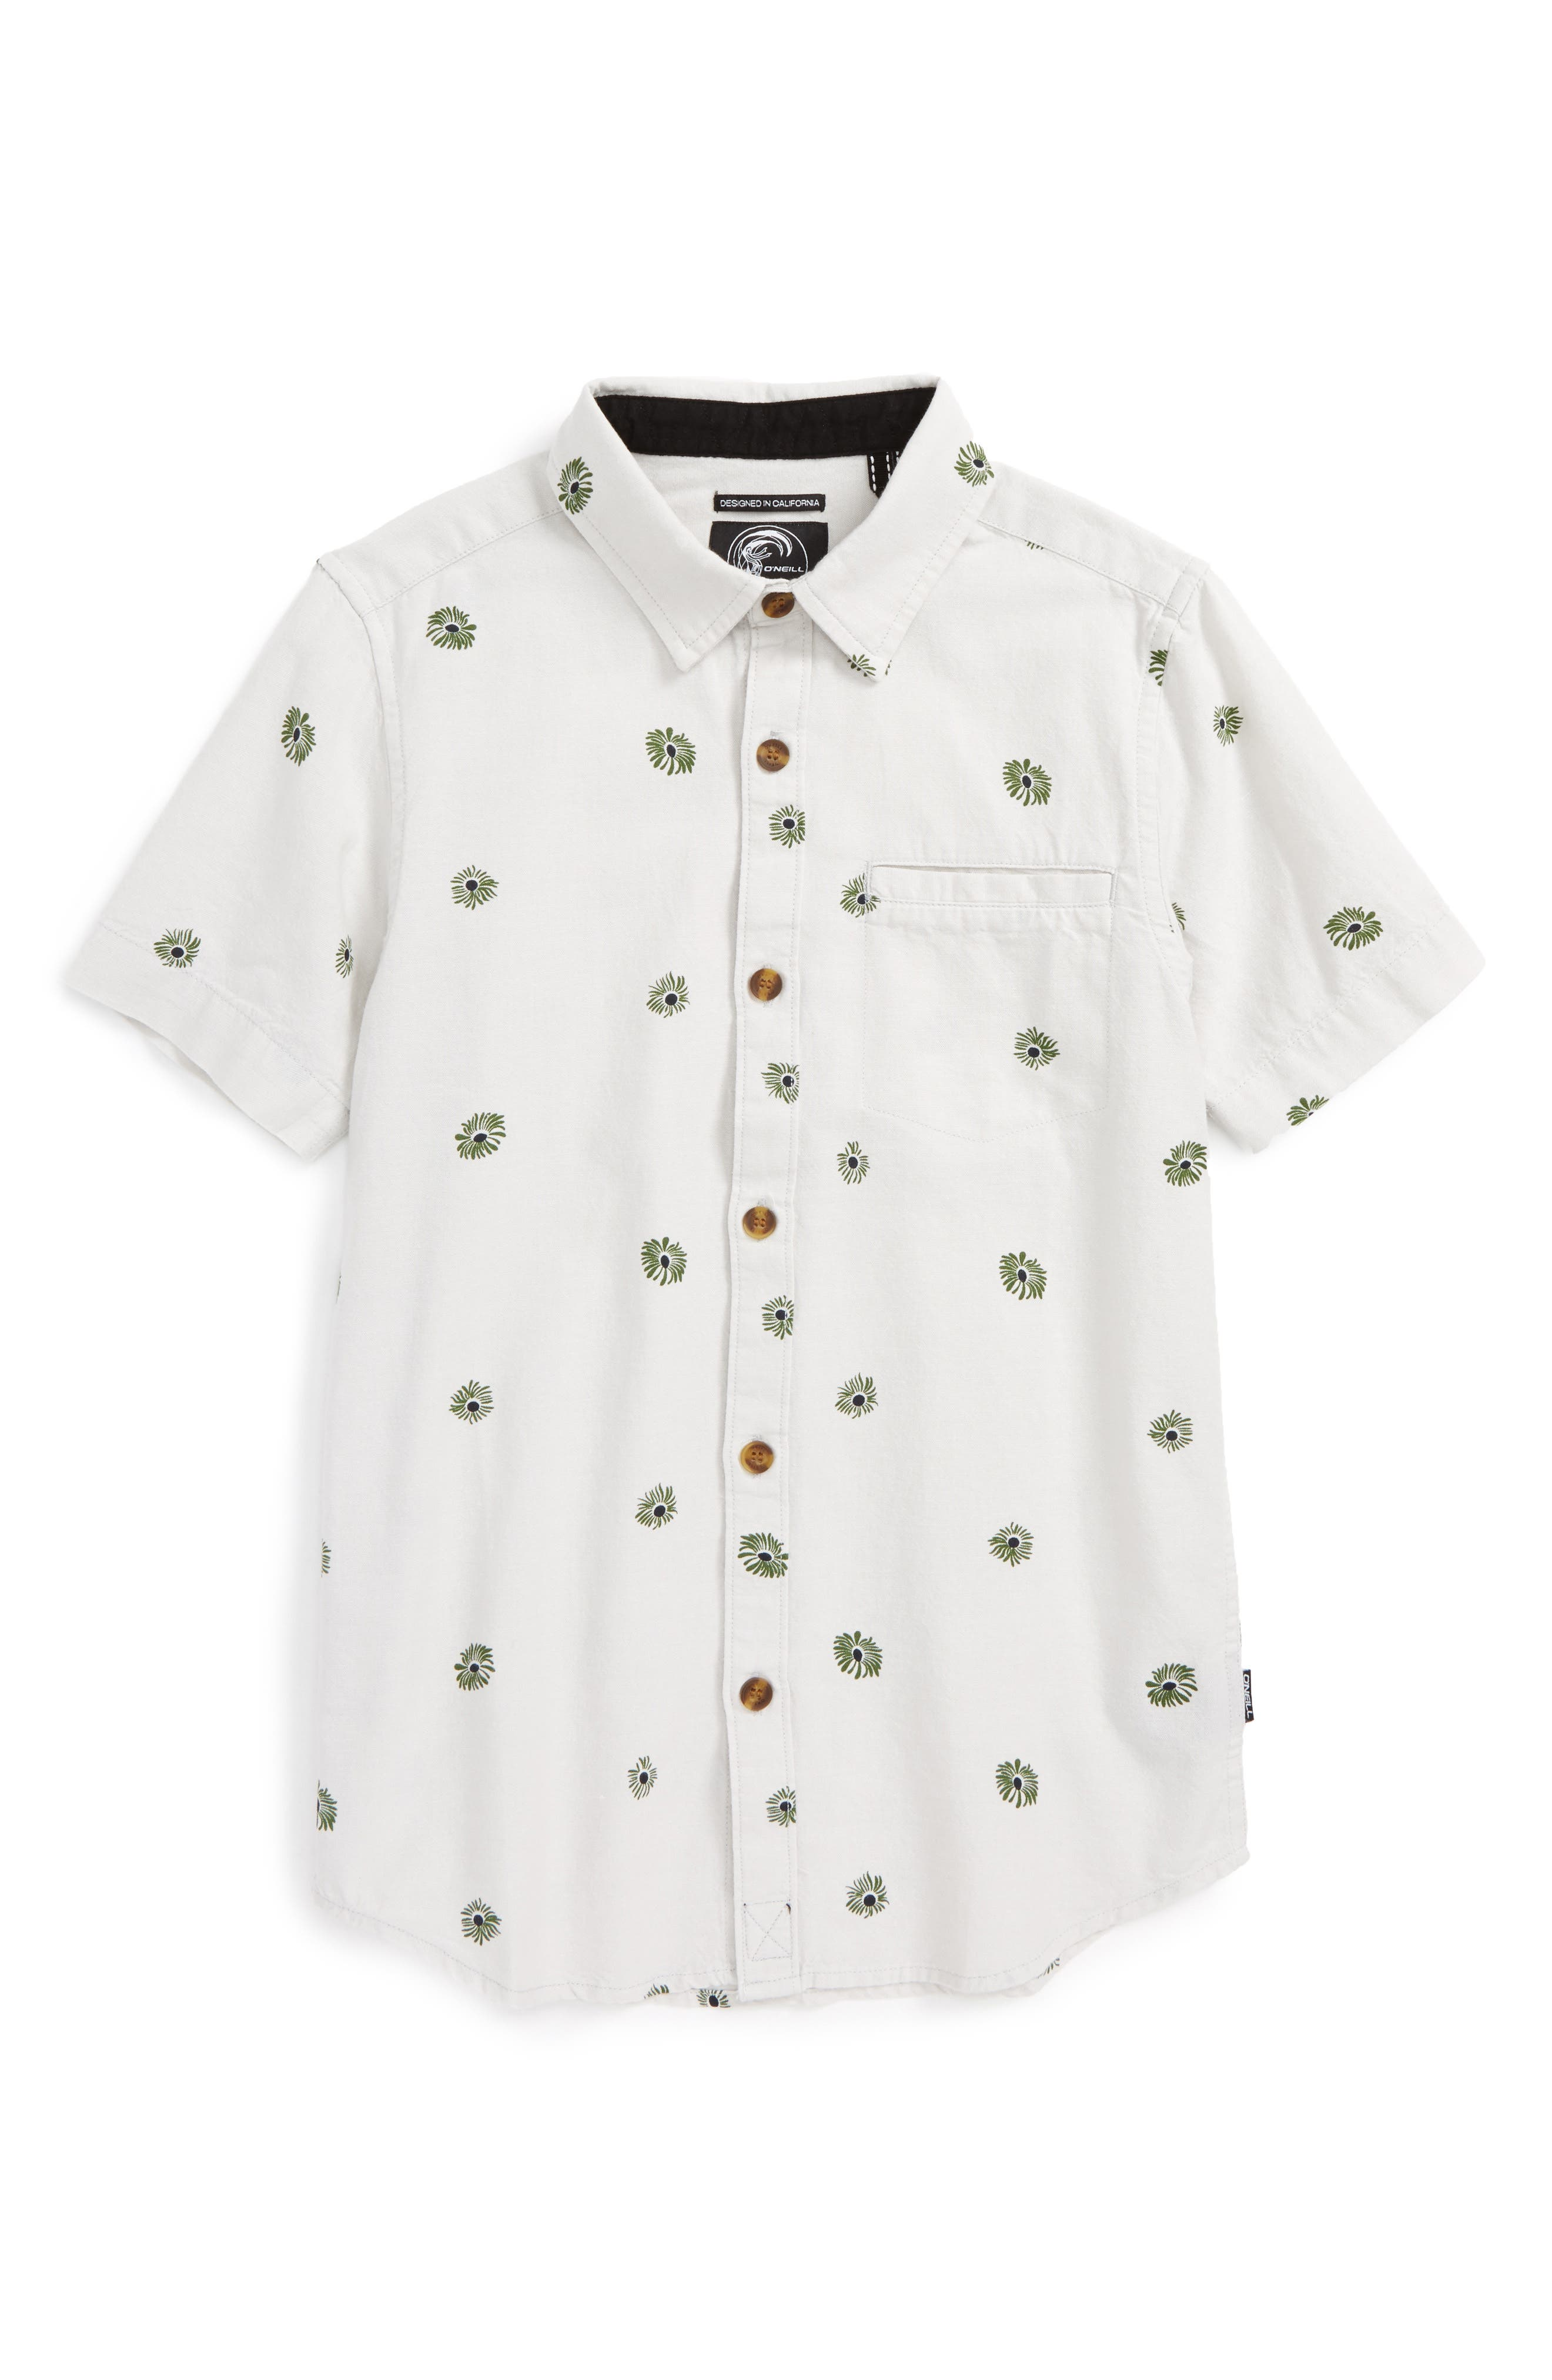 O'Neill Brees Floral Print Woven Shirt (Big Boys)